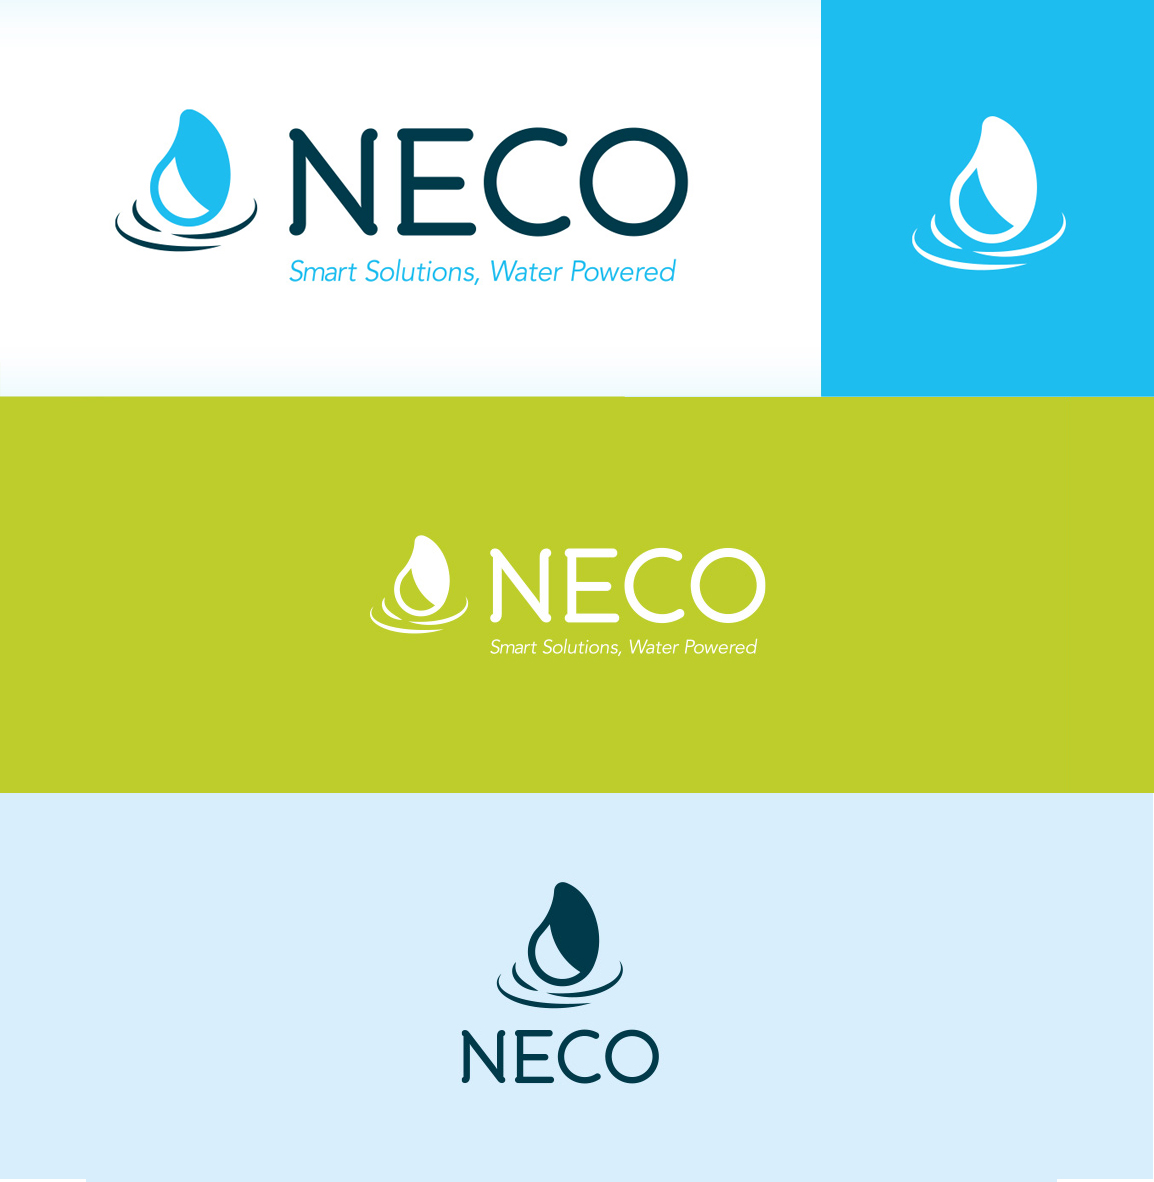 NECO-Branding-logos-versions-PHONE